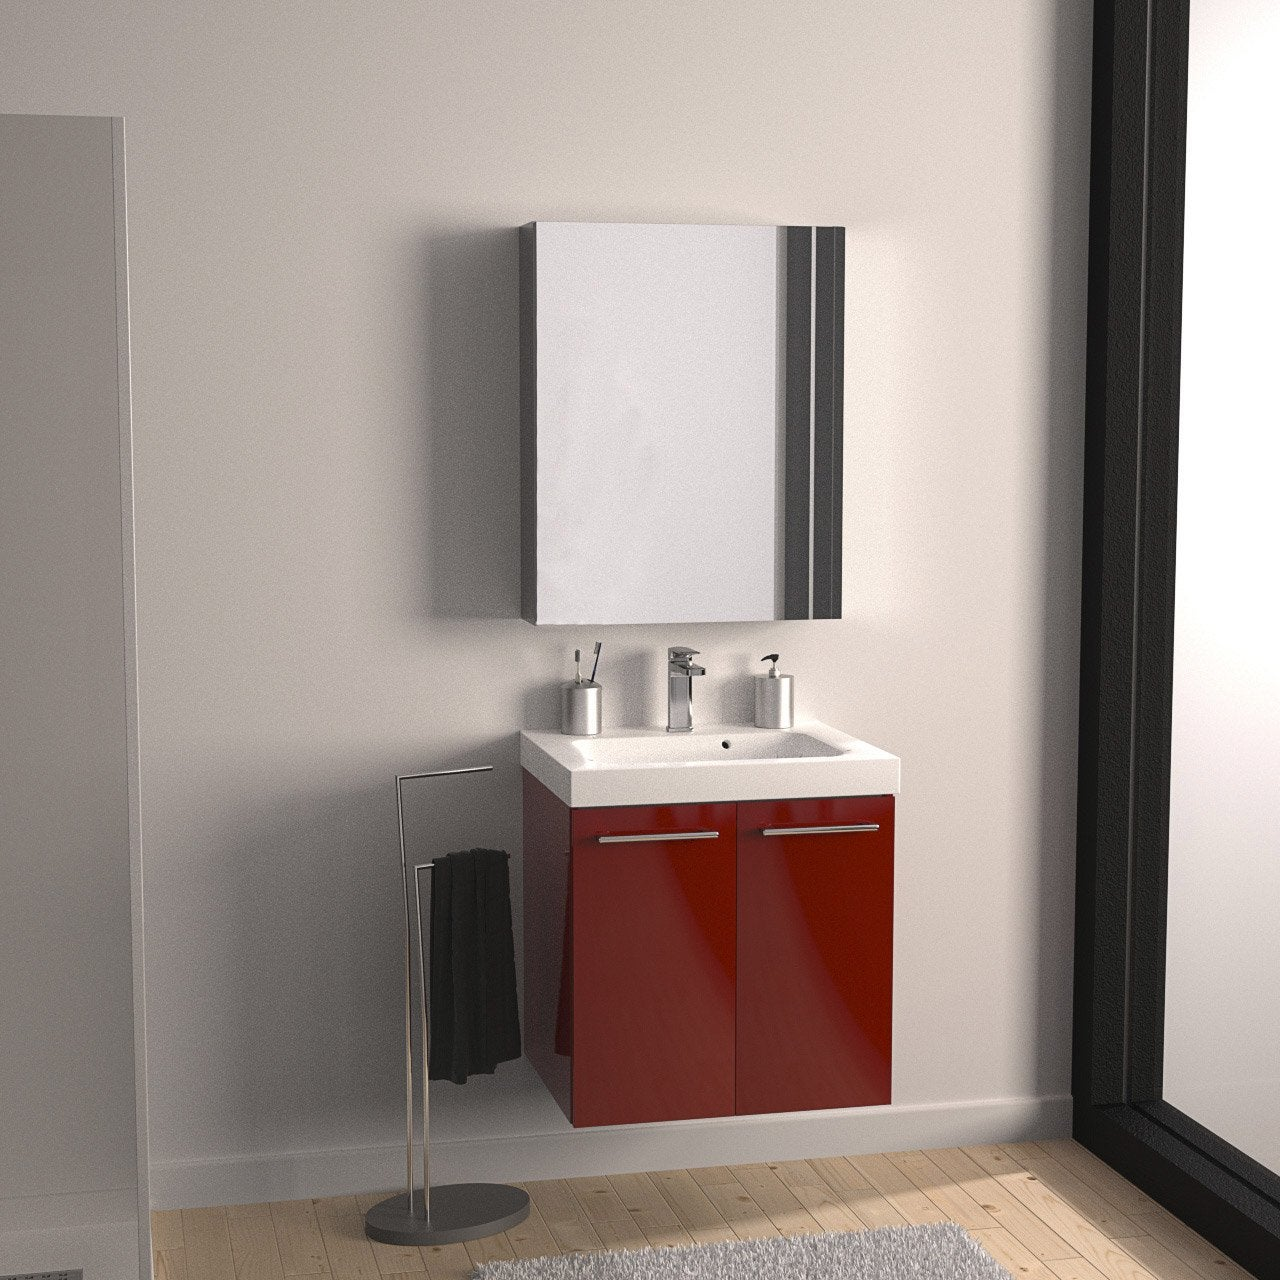 meuble vasque l61 x h577 x p46 cm rouge sensea remix leroy merlin - Vasque Double Salle De Bain Leroy Merlin